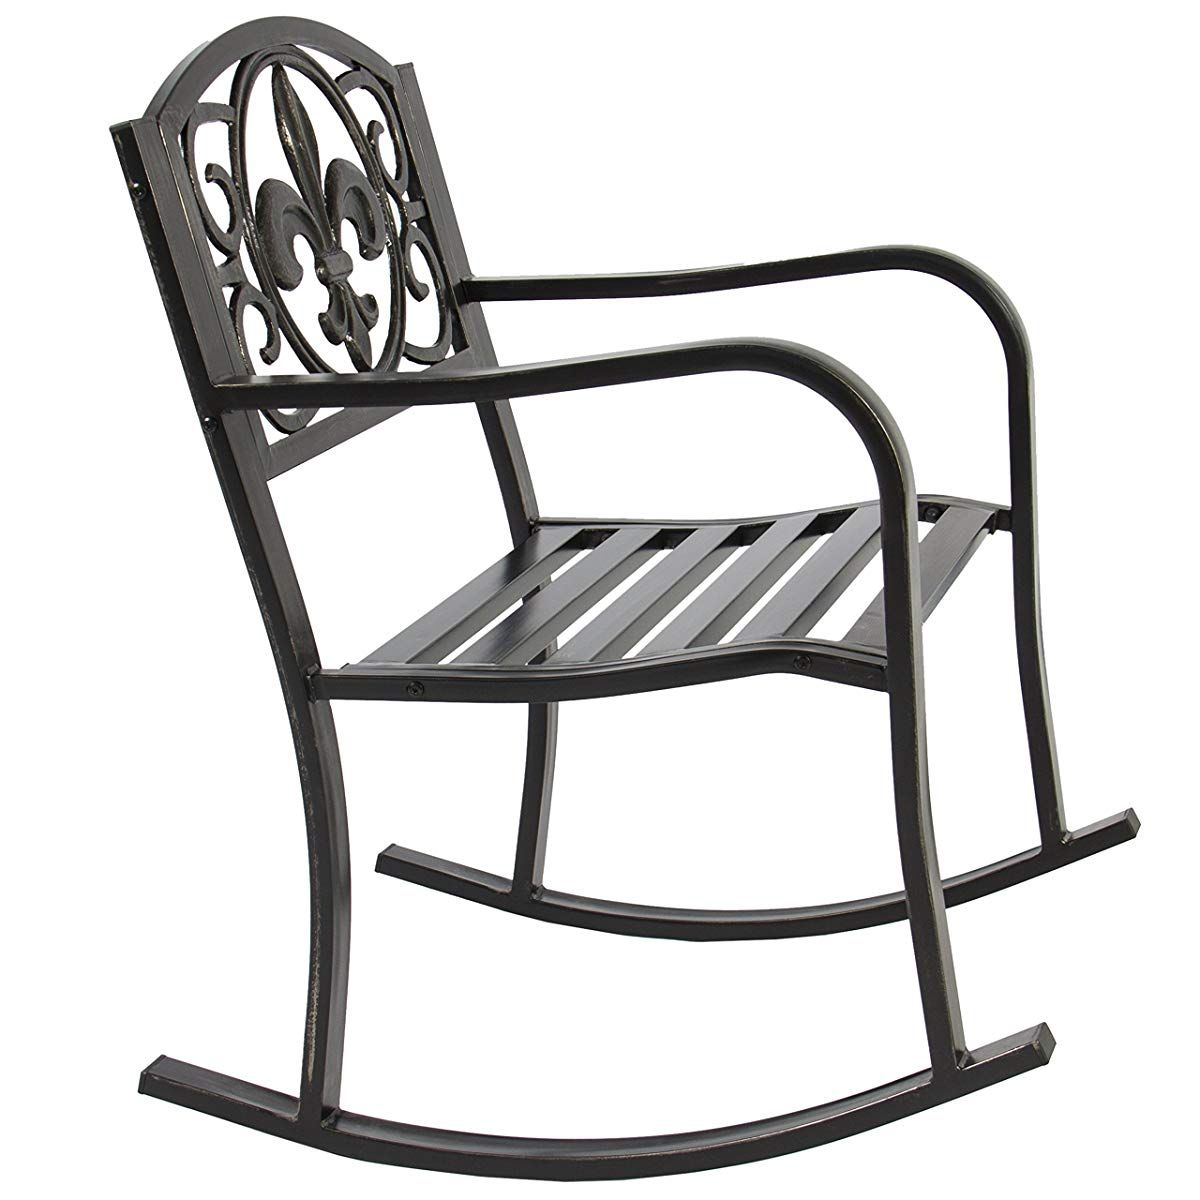 Metal Rocking Chair Seat For Outdoor Black Bronze Metal Rocking Chair Outdoor Rocking Chairs Rocking Chair